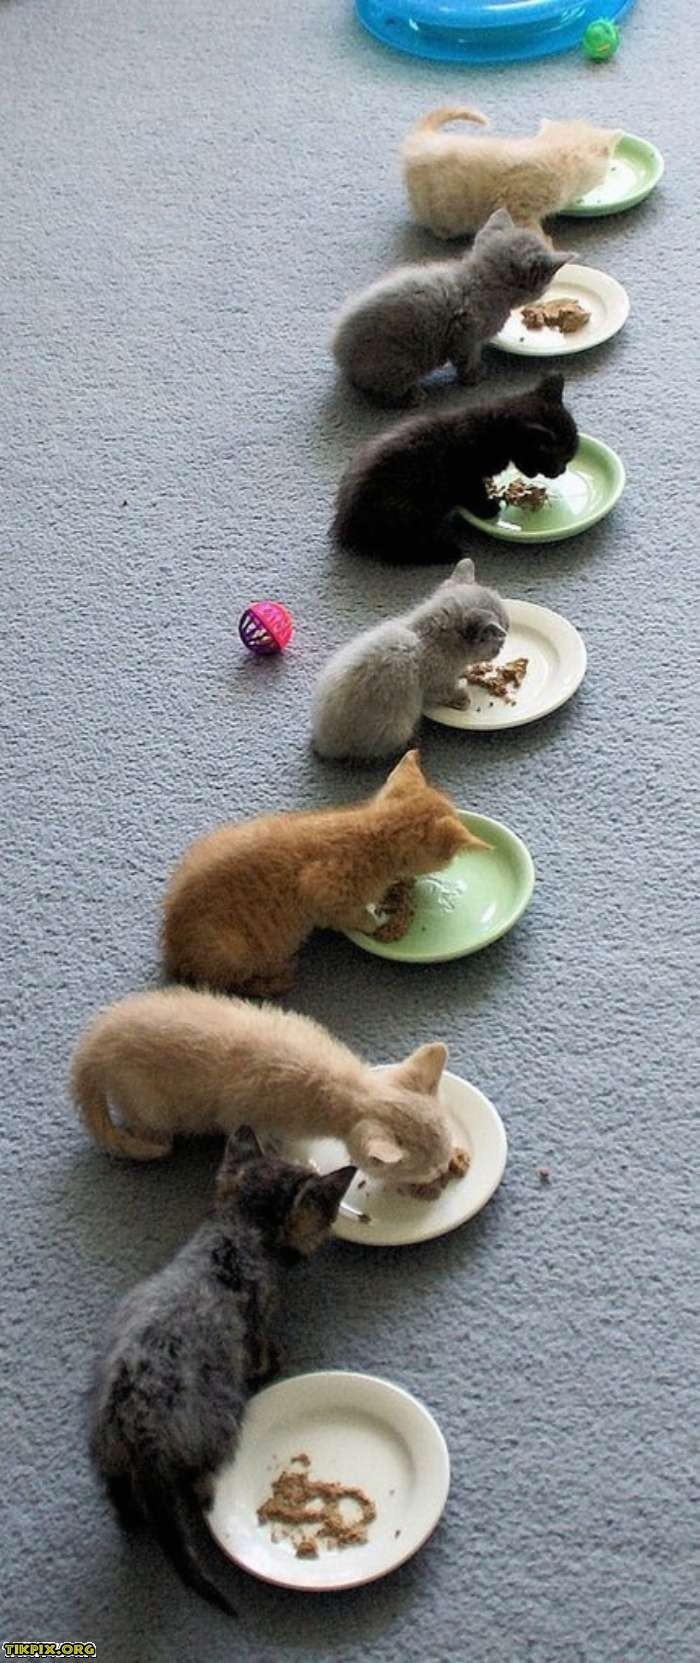 Sooo...once upon a time i said i would have 7 cats....I FOUND THEM!!!!